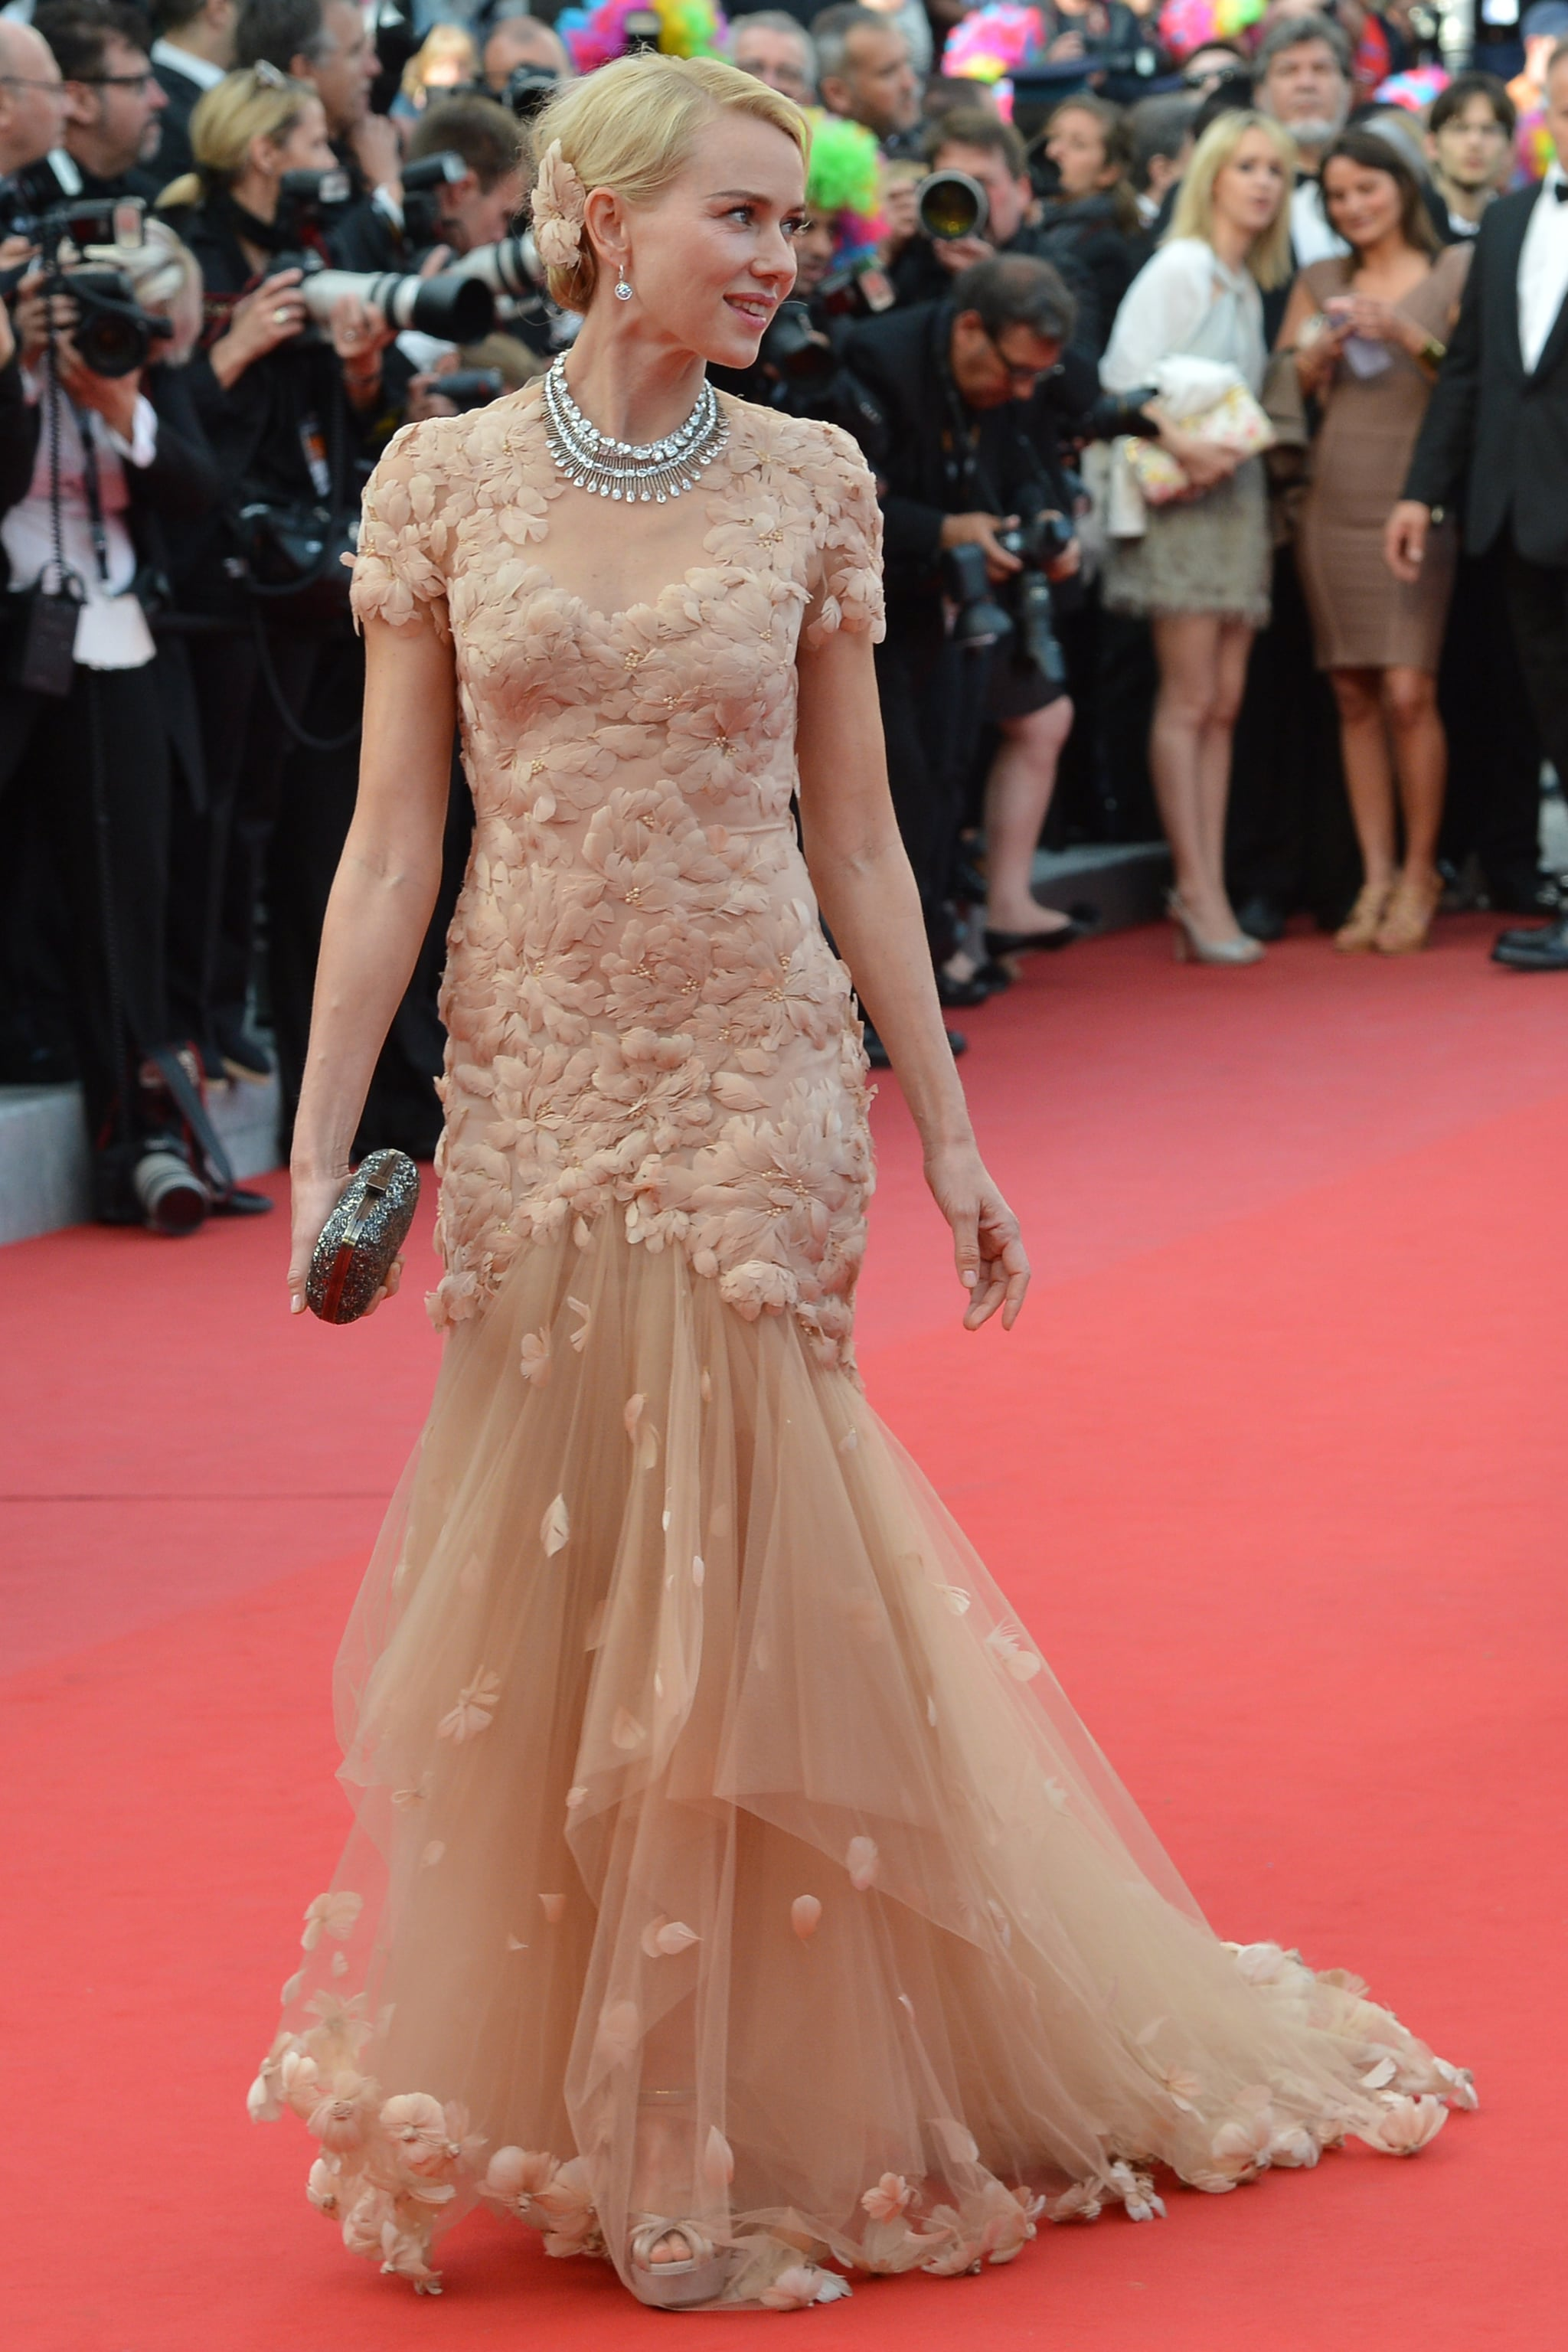 Naomi Watts wore a Marchesa gown for a screening of Madagascar 3: Europe's Most Wanted during the 2012 Cannes Film Festival.